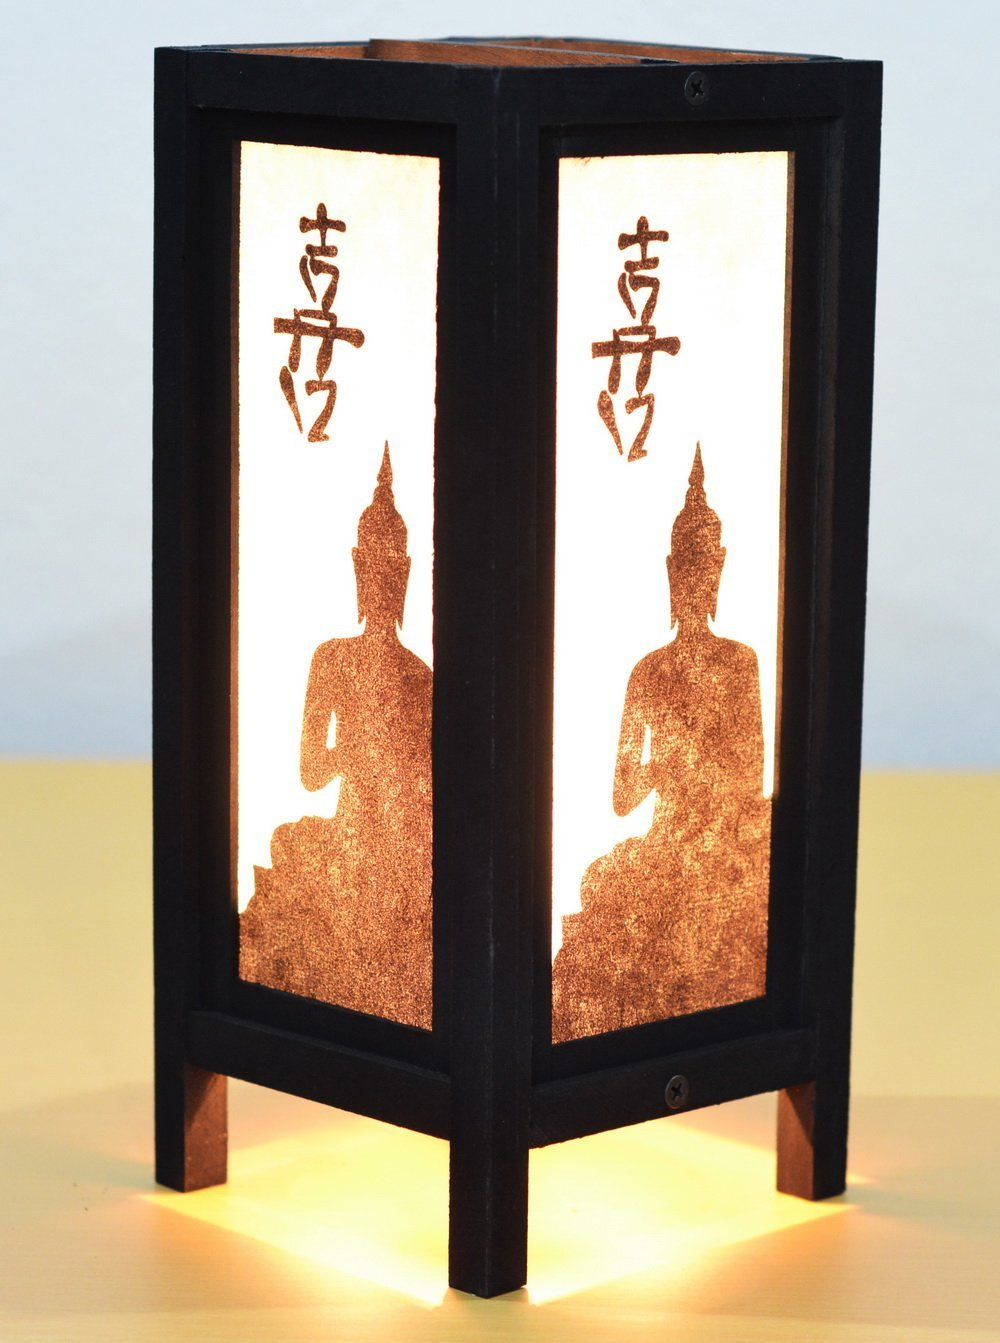 Decorative Lamp Thai Vintage Handmade Asian Oriental Black Buddha Bedside Table Light Floor Wood Paper Lamp Shades Home Bedroom Garden Decoration Modern Design by Jakapan's Shop